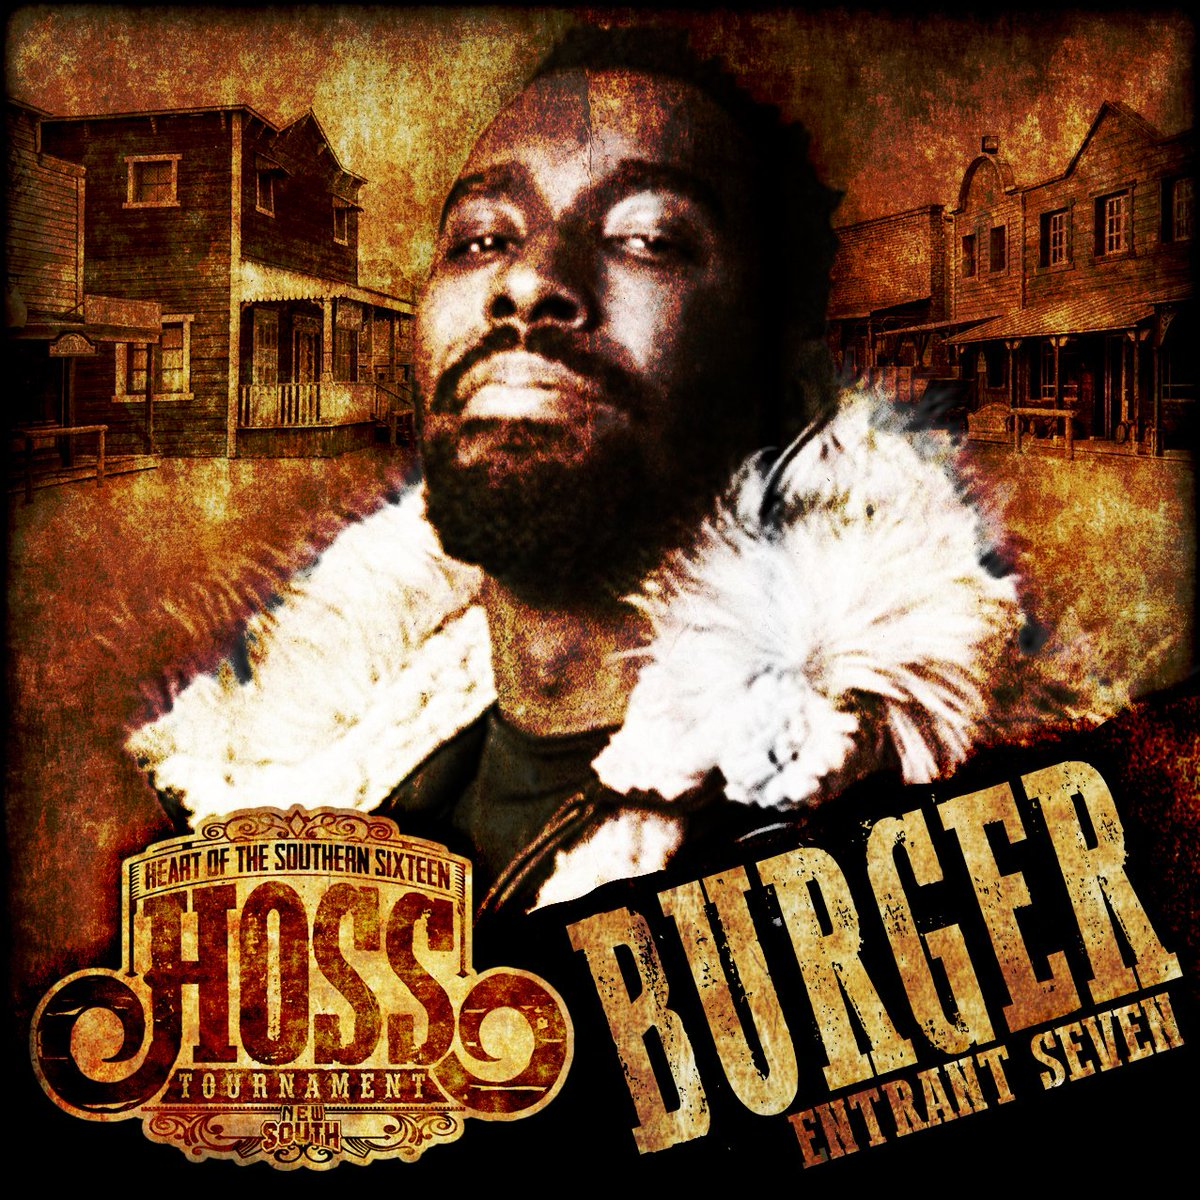 At lucky entrant #7, We are pleased as punch to bring back the one and only @CheeseburgerROH ! Be there March 1st in Hartselle,AL to see this ROH/New Japan Superstar in Round 1 Action! #HappyValentine'sDay #NewSouthFamily #BestInTheSouth #HOSS #HeartOftheSOuthernSixteen https://t.co/S1HaavXgco